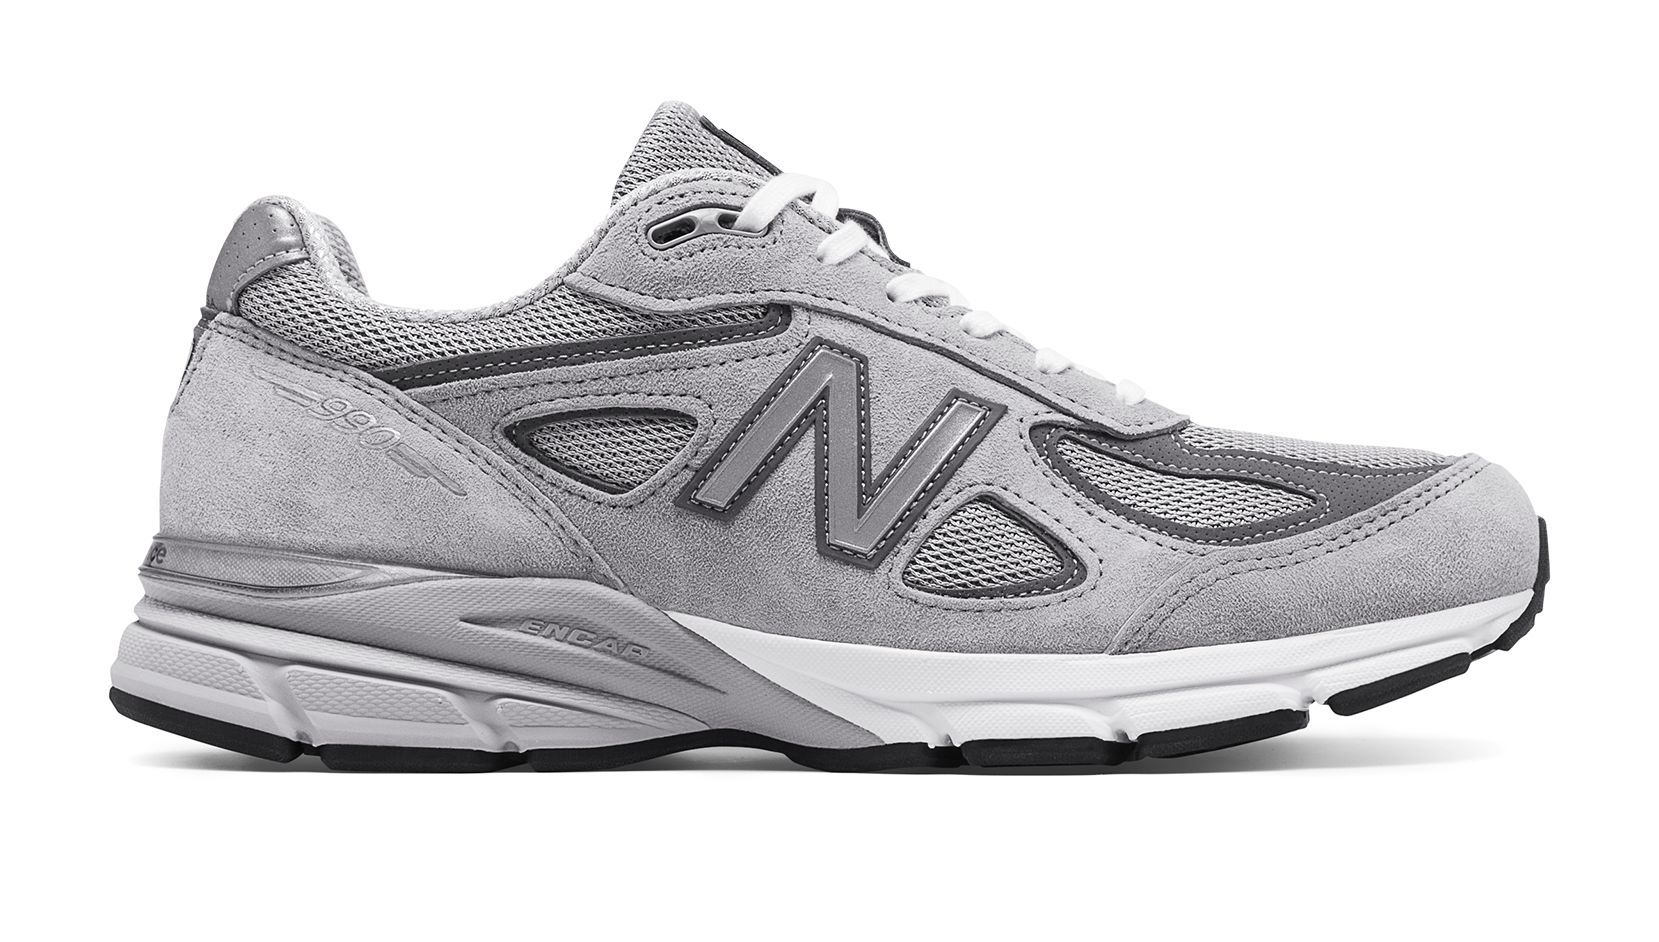 New Balance 990v4 Made in the USA